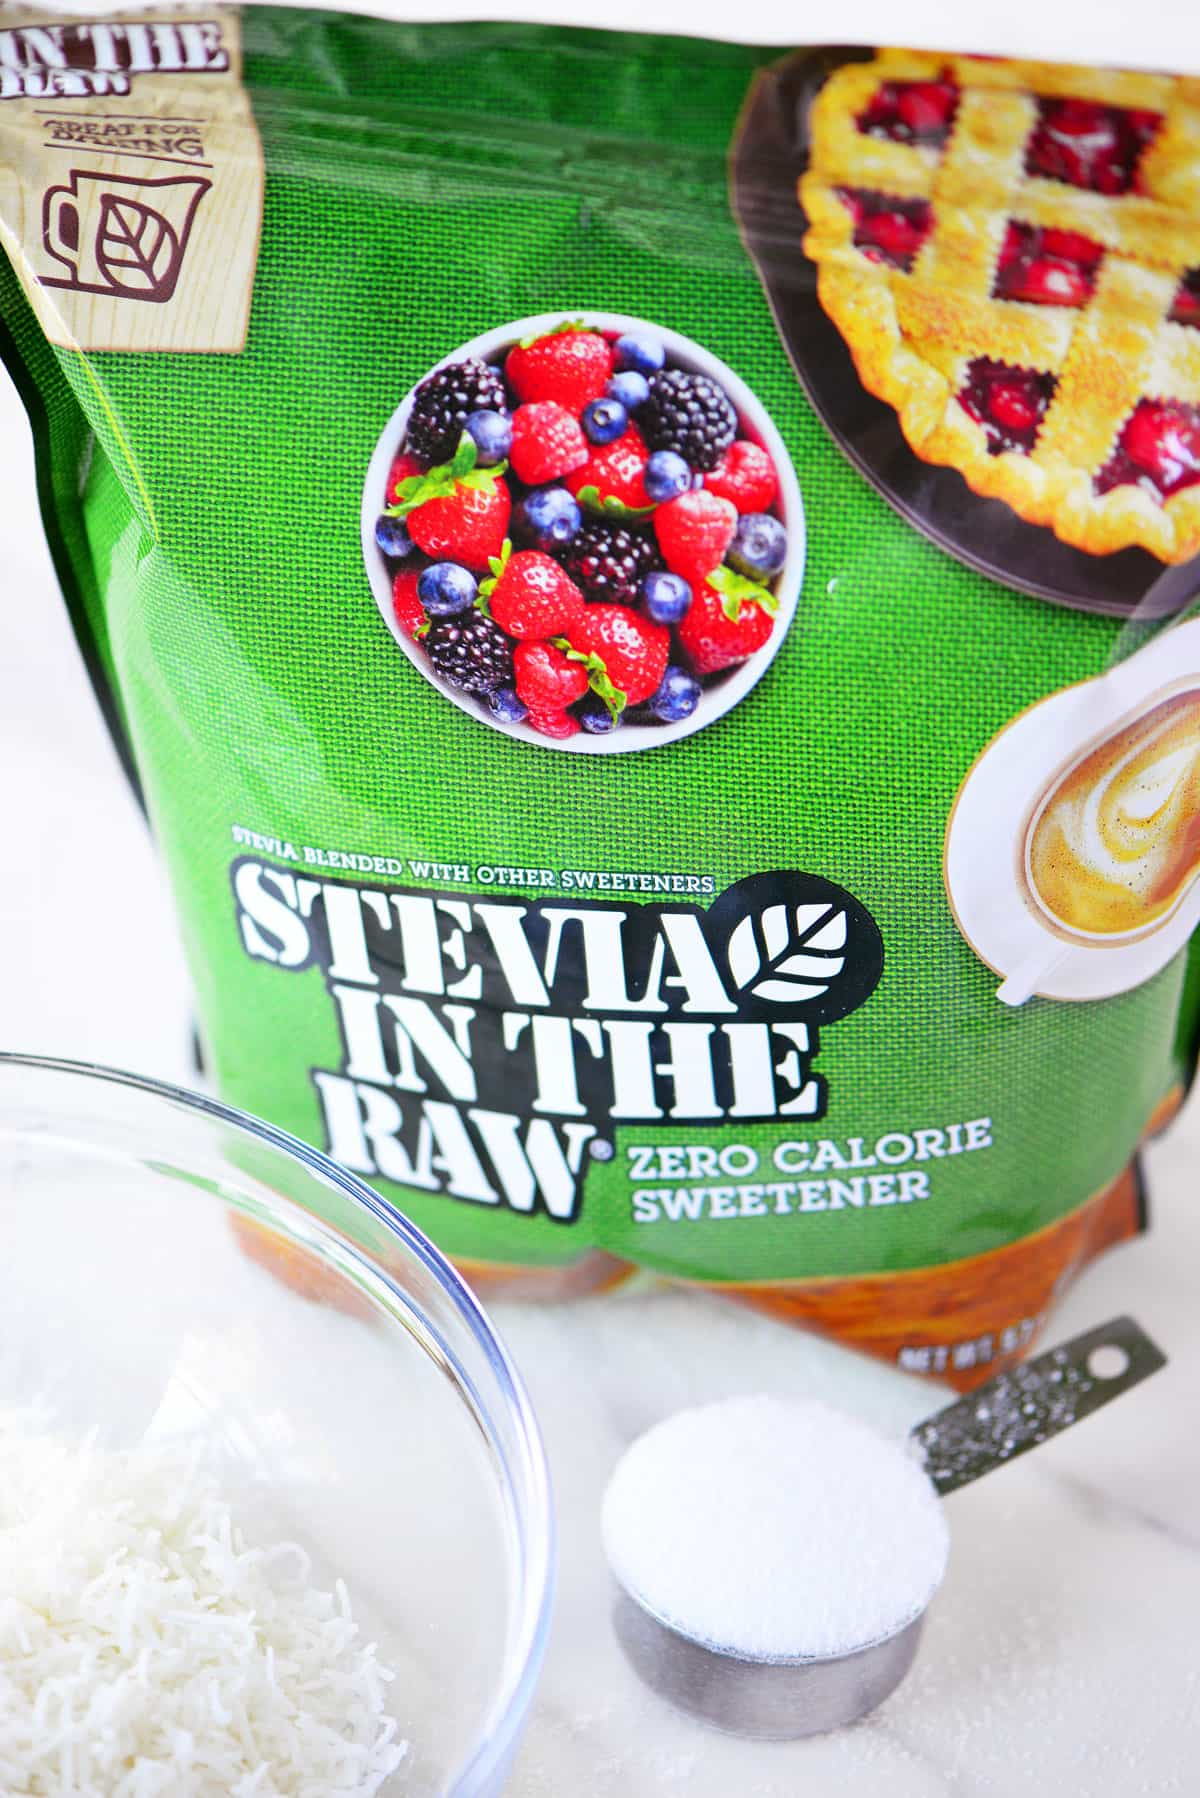 Stevia In The Raw Bakers Bag